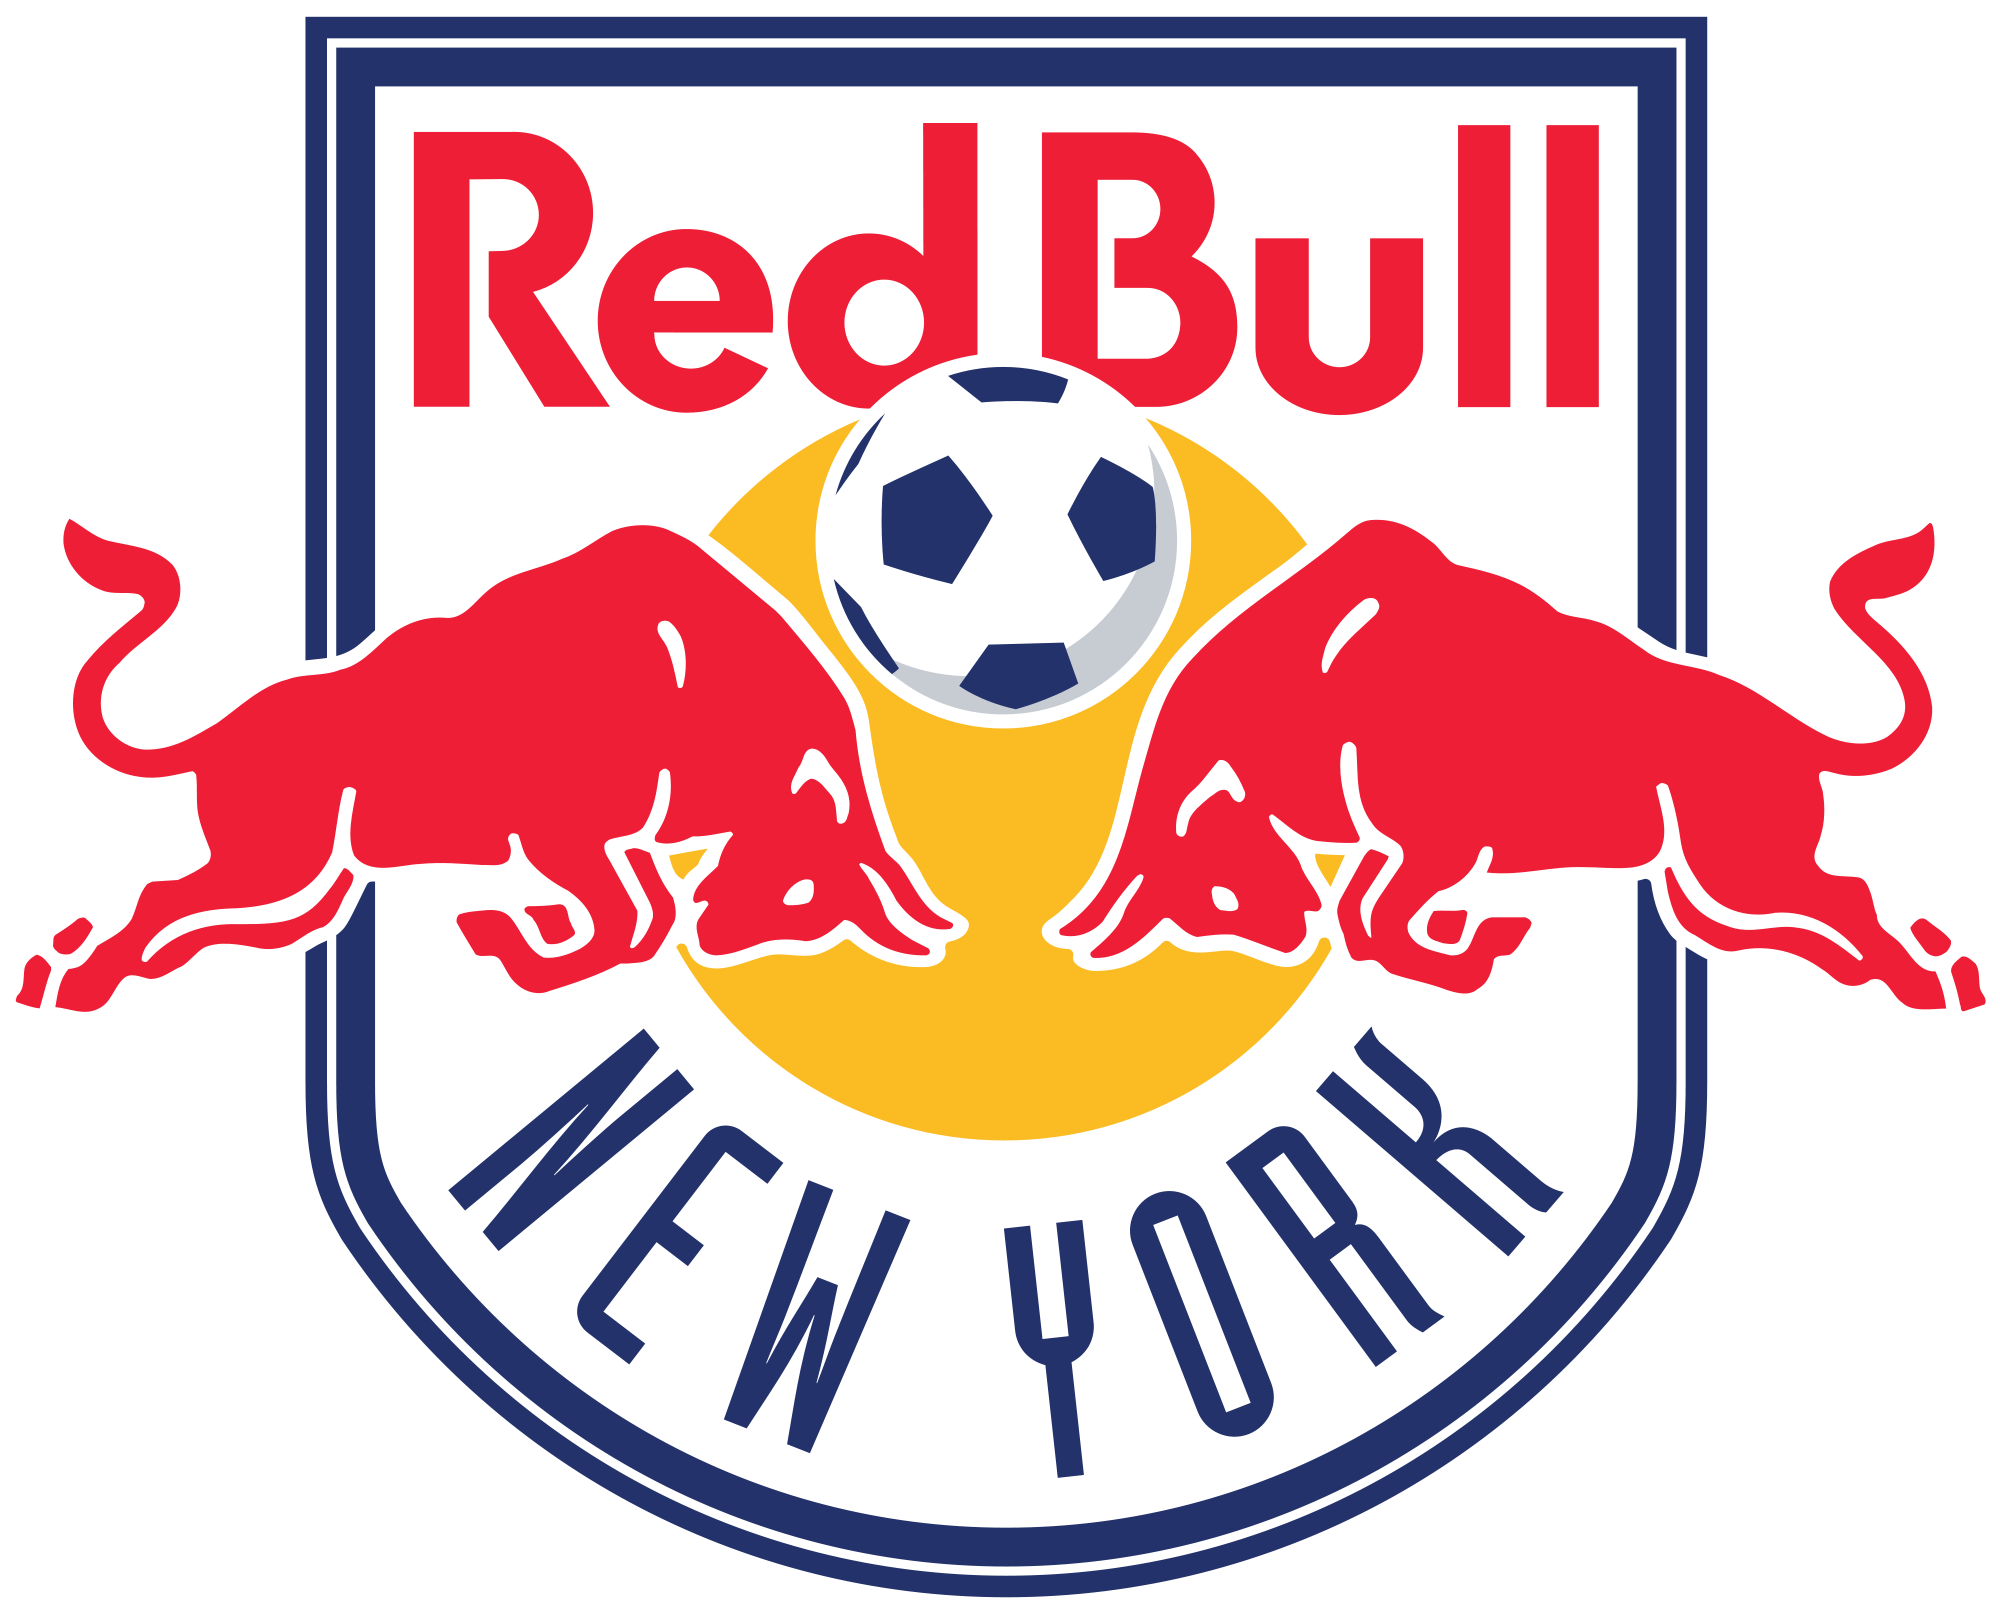 Red Bull Backgrounds And Wallpapers New York Red Bulls Logo